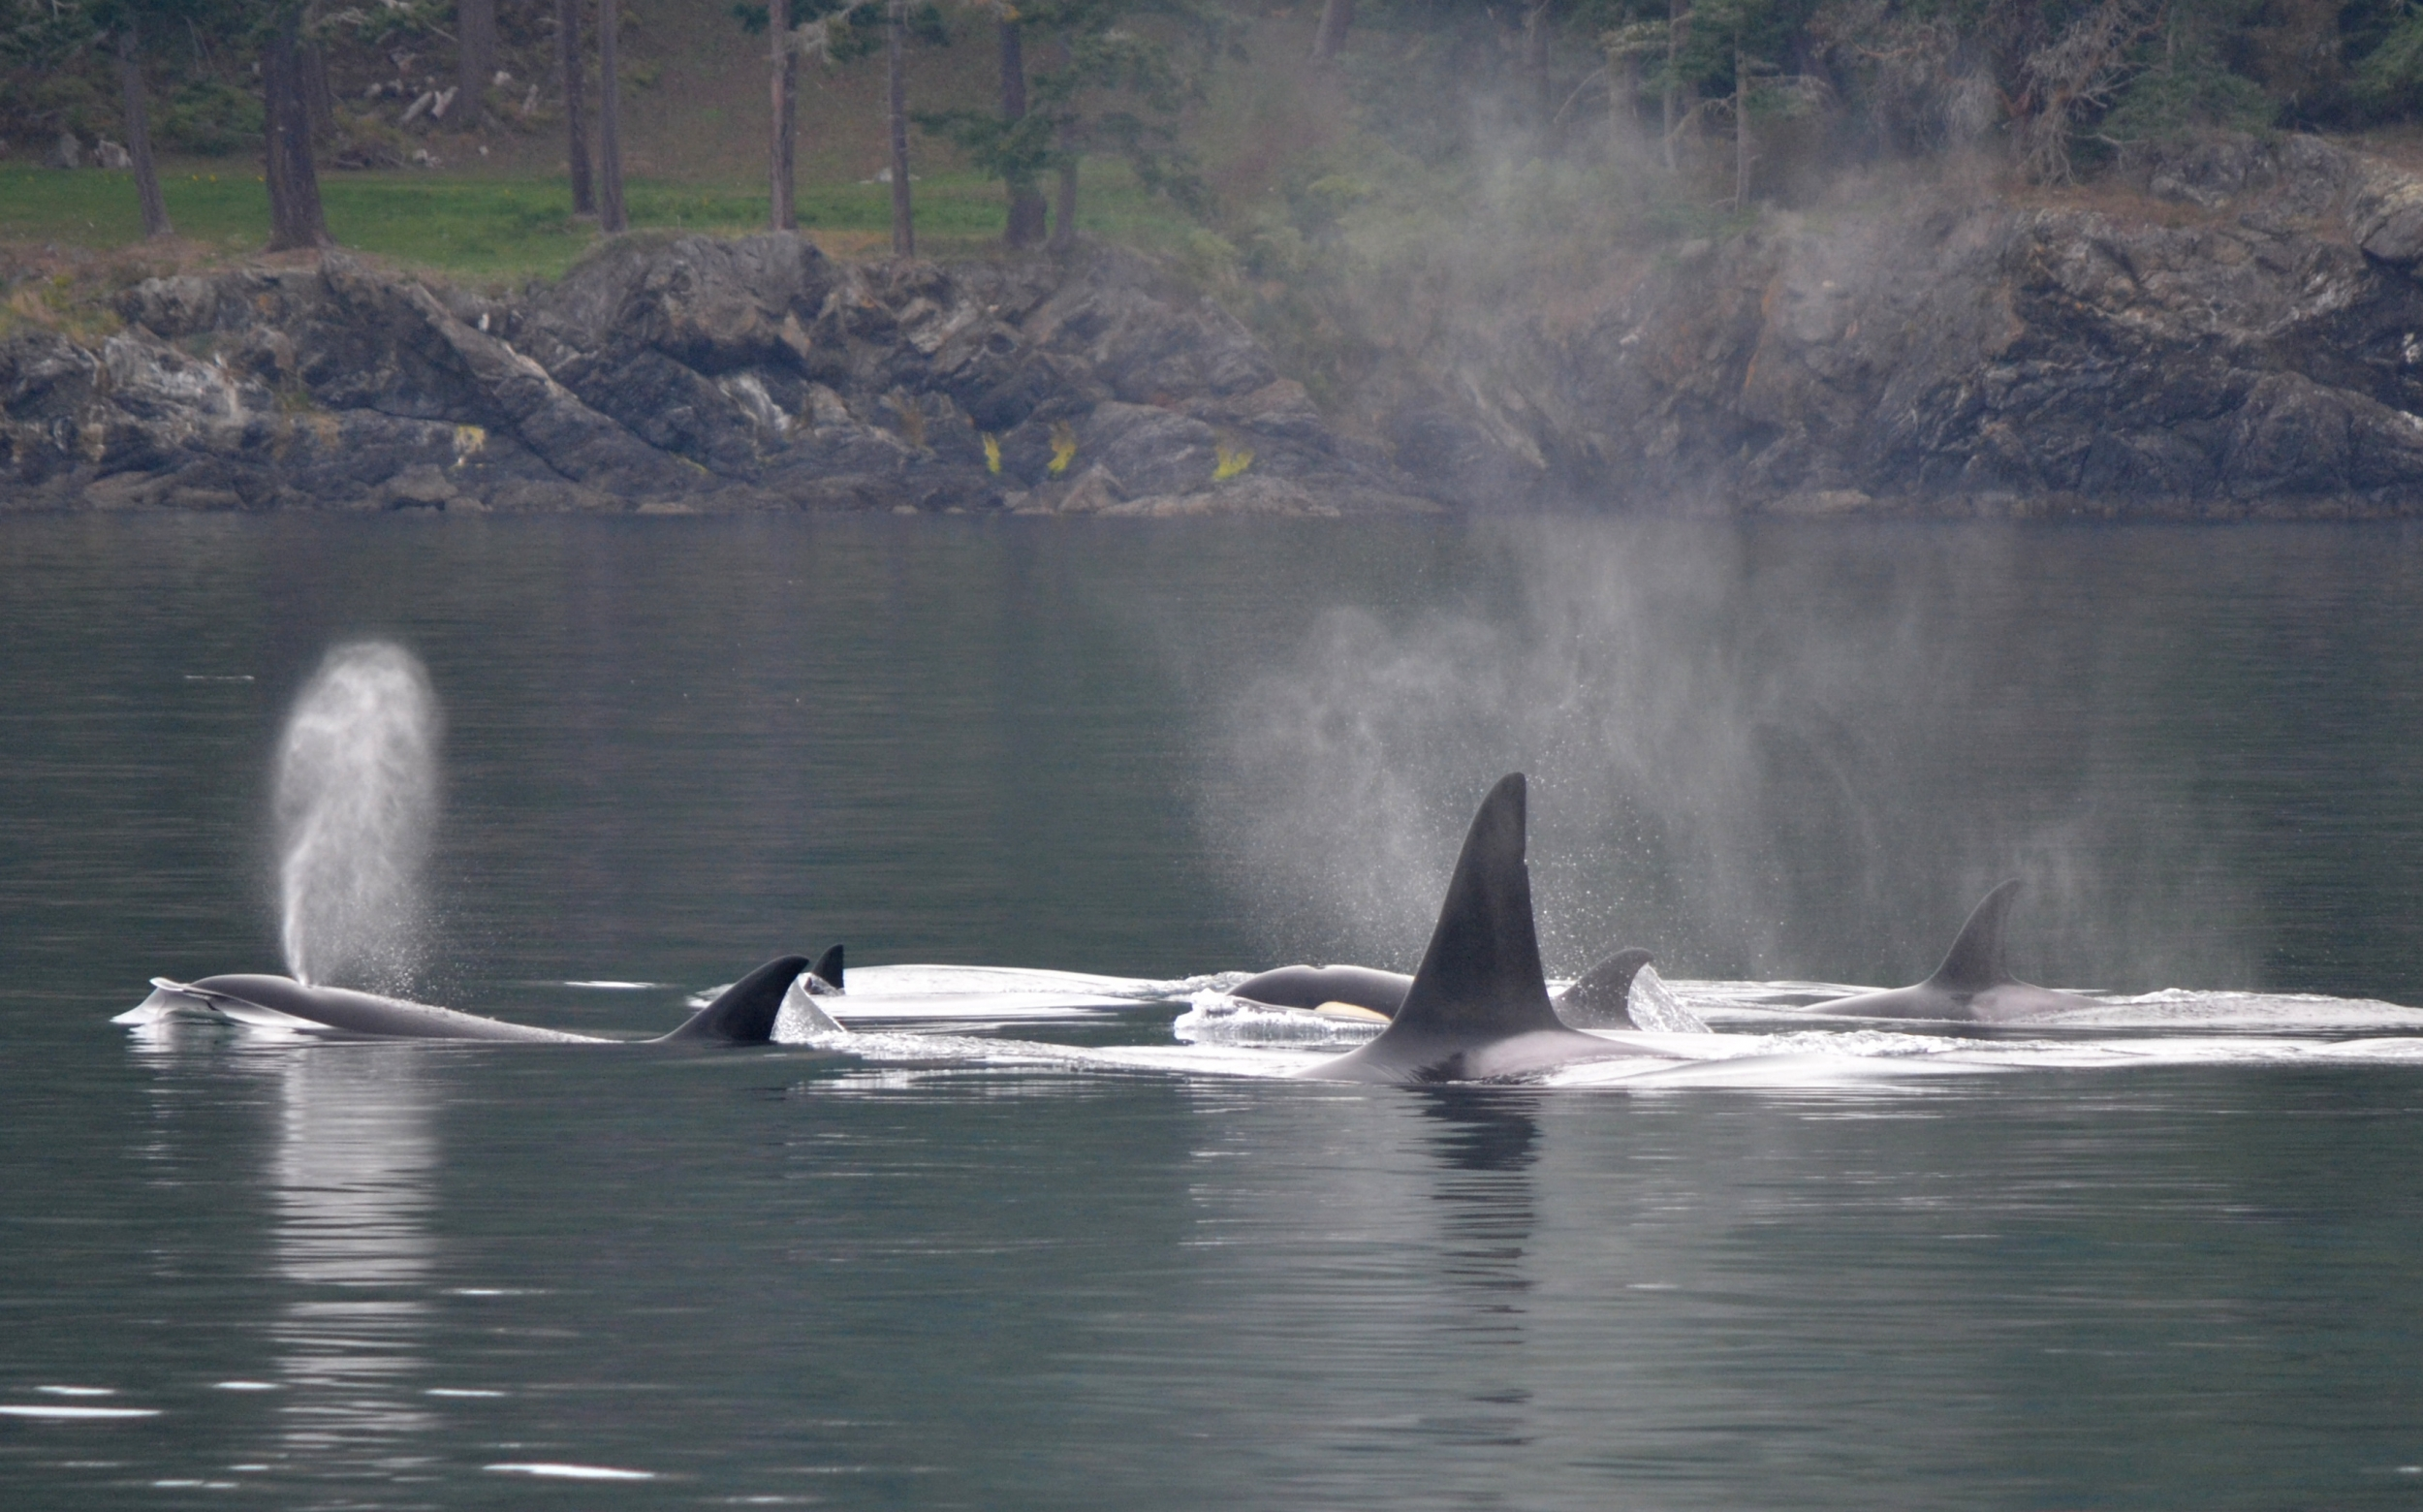 orcas surfacing near San Juan Island